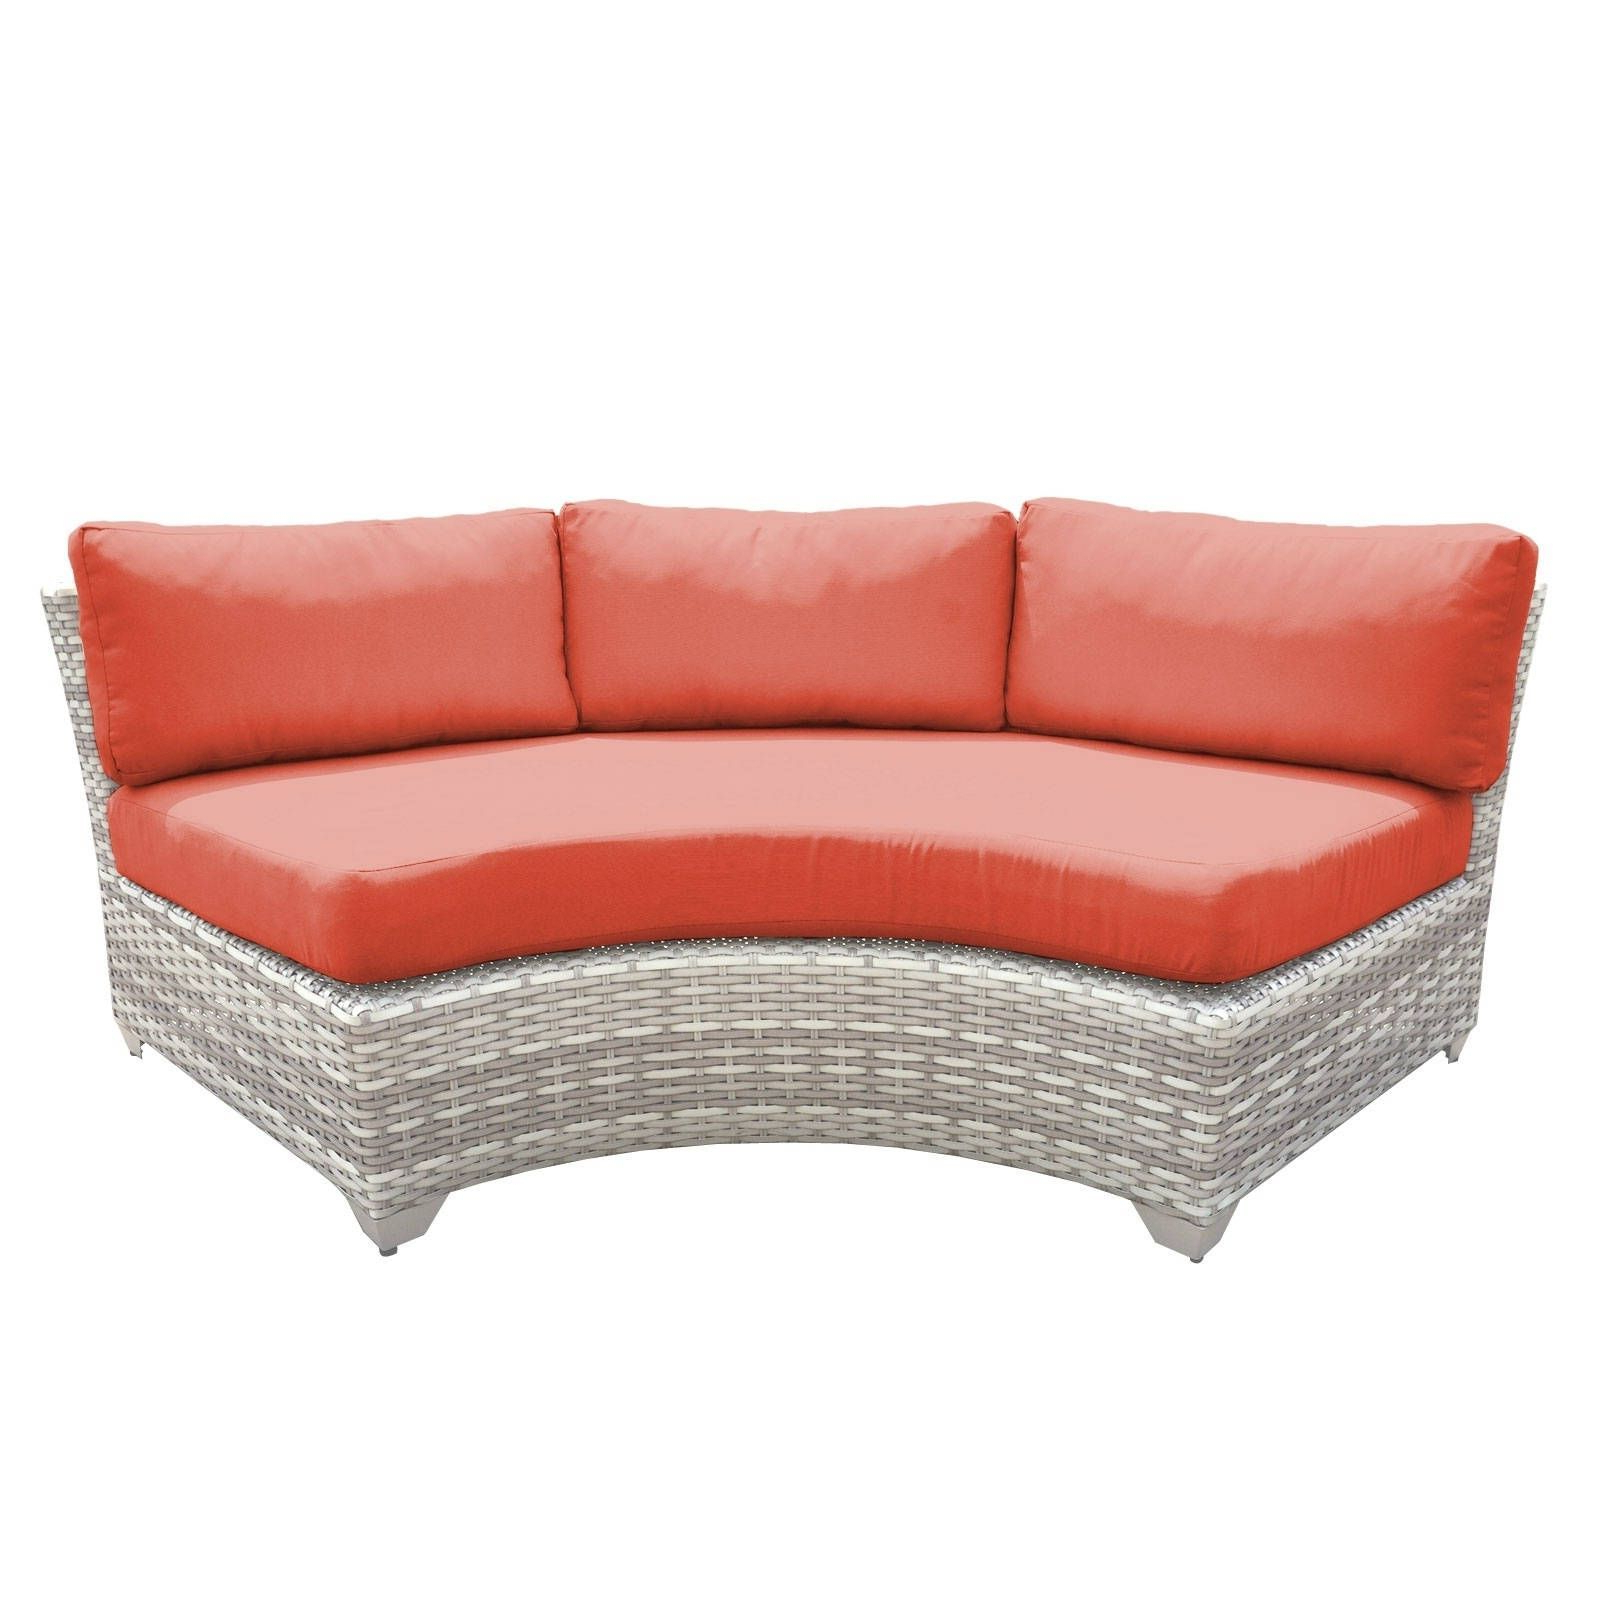 Catamaran Outdoor Patio Curved Wicker Sofa (Tangerine), Grey For 2019 Waterbury Curved Armless Sofa With Cushions (View 5 of 20)